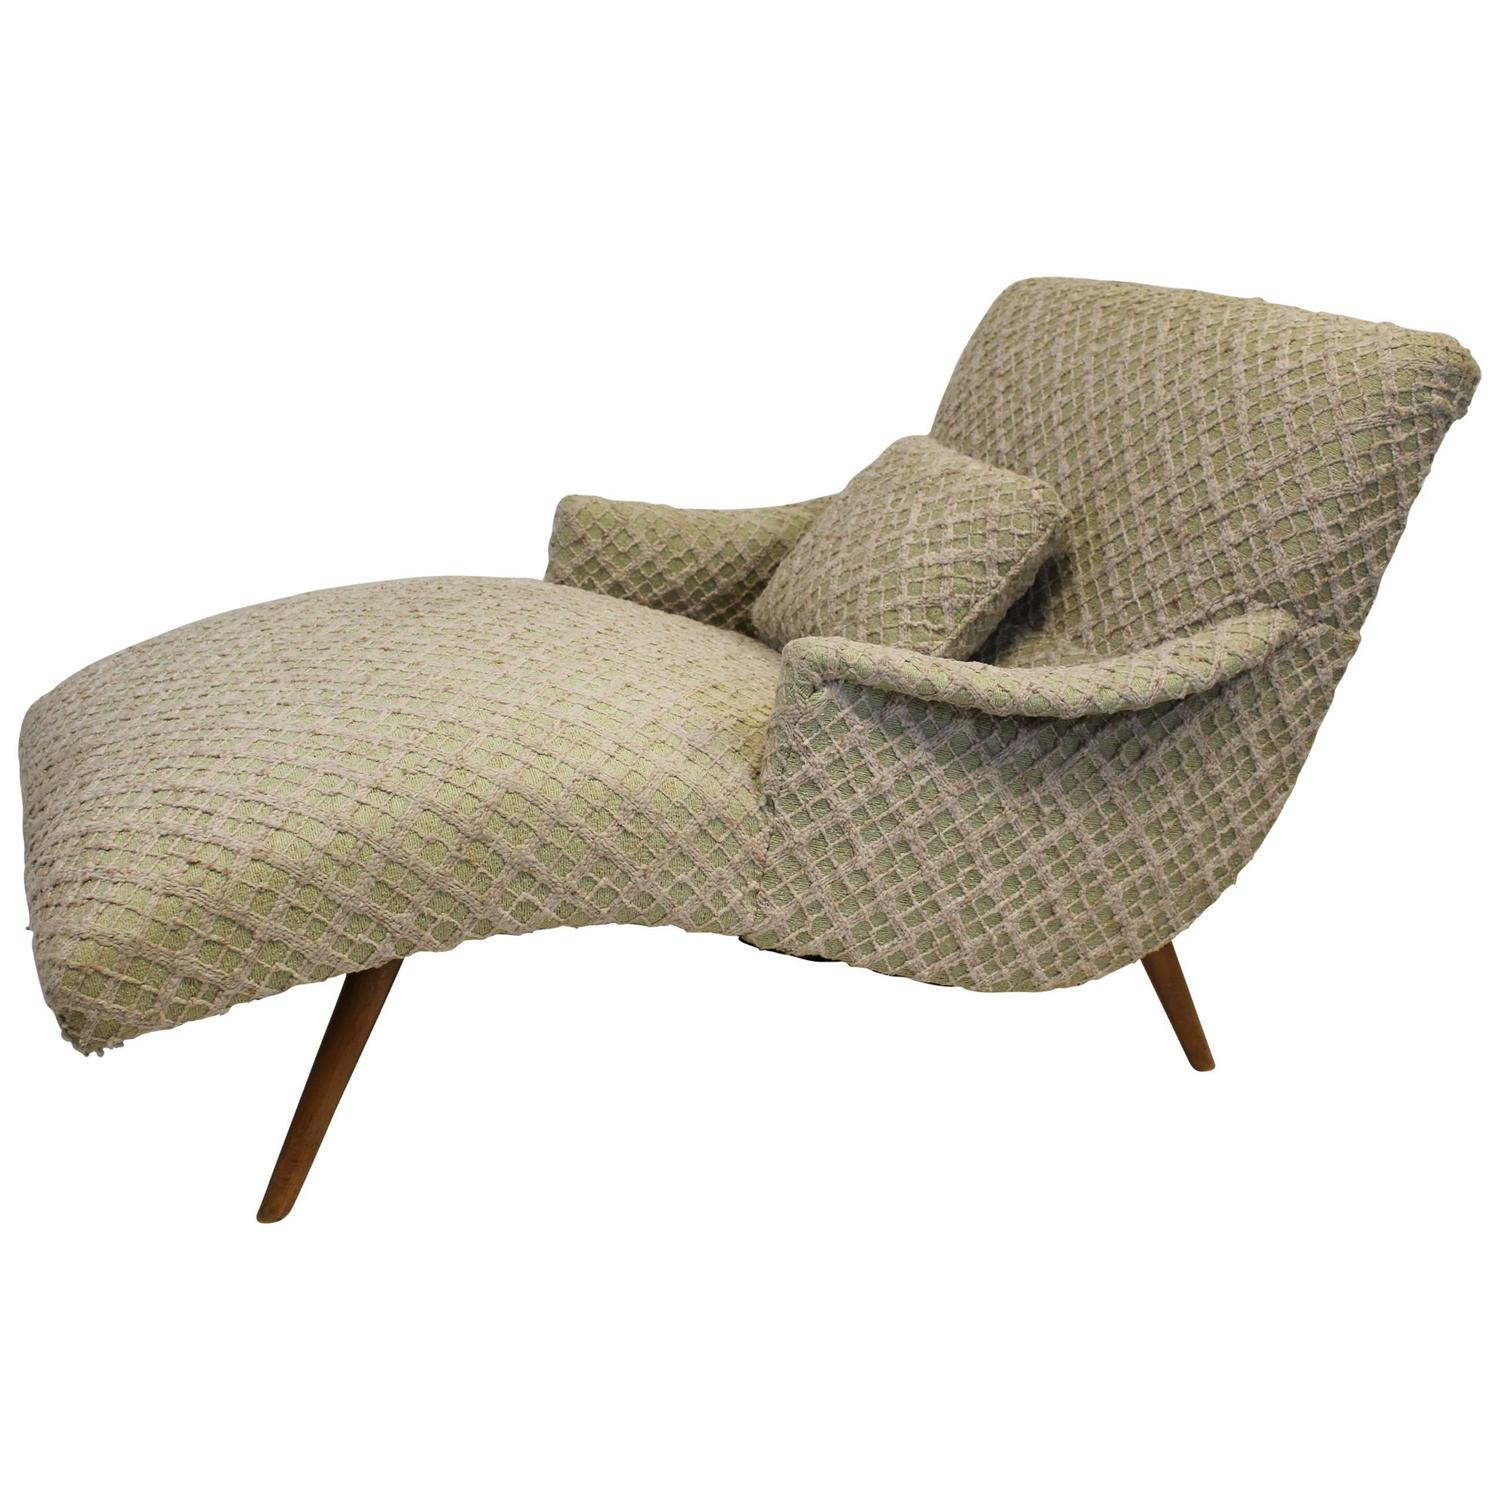 Adrian Pearsall Style Chaise Lounge Chair For Sale at 1stdibs